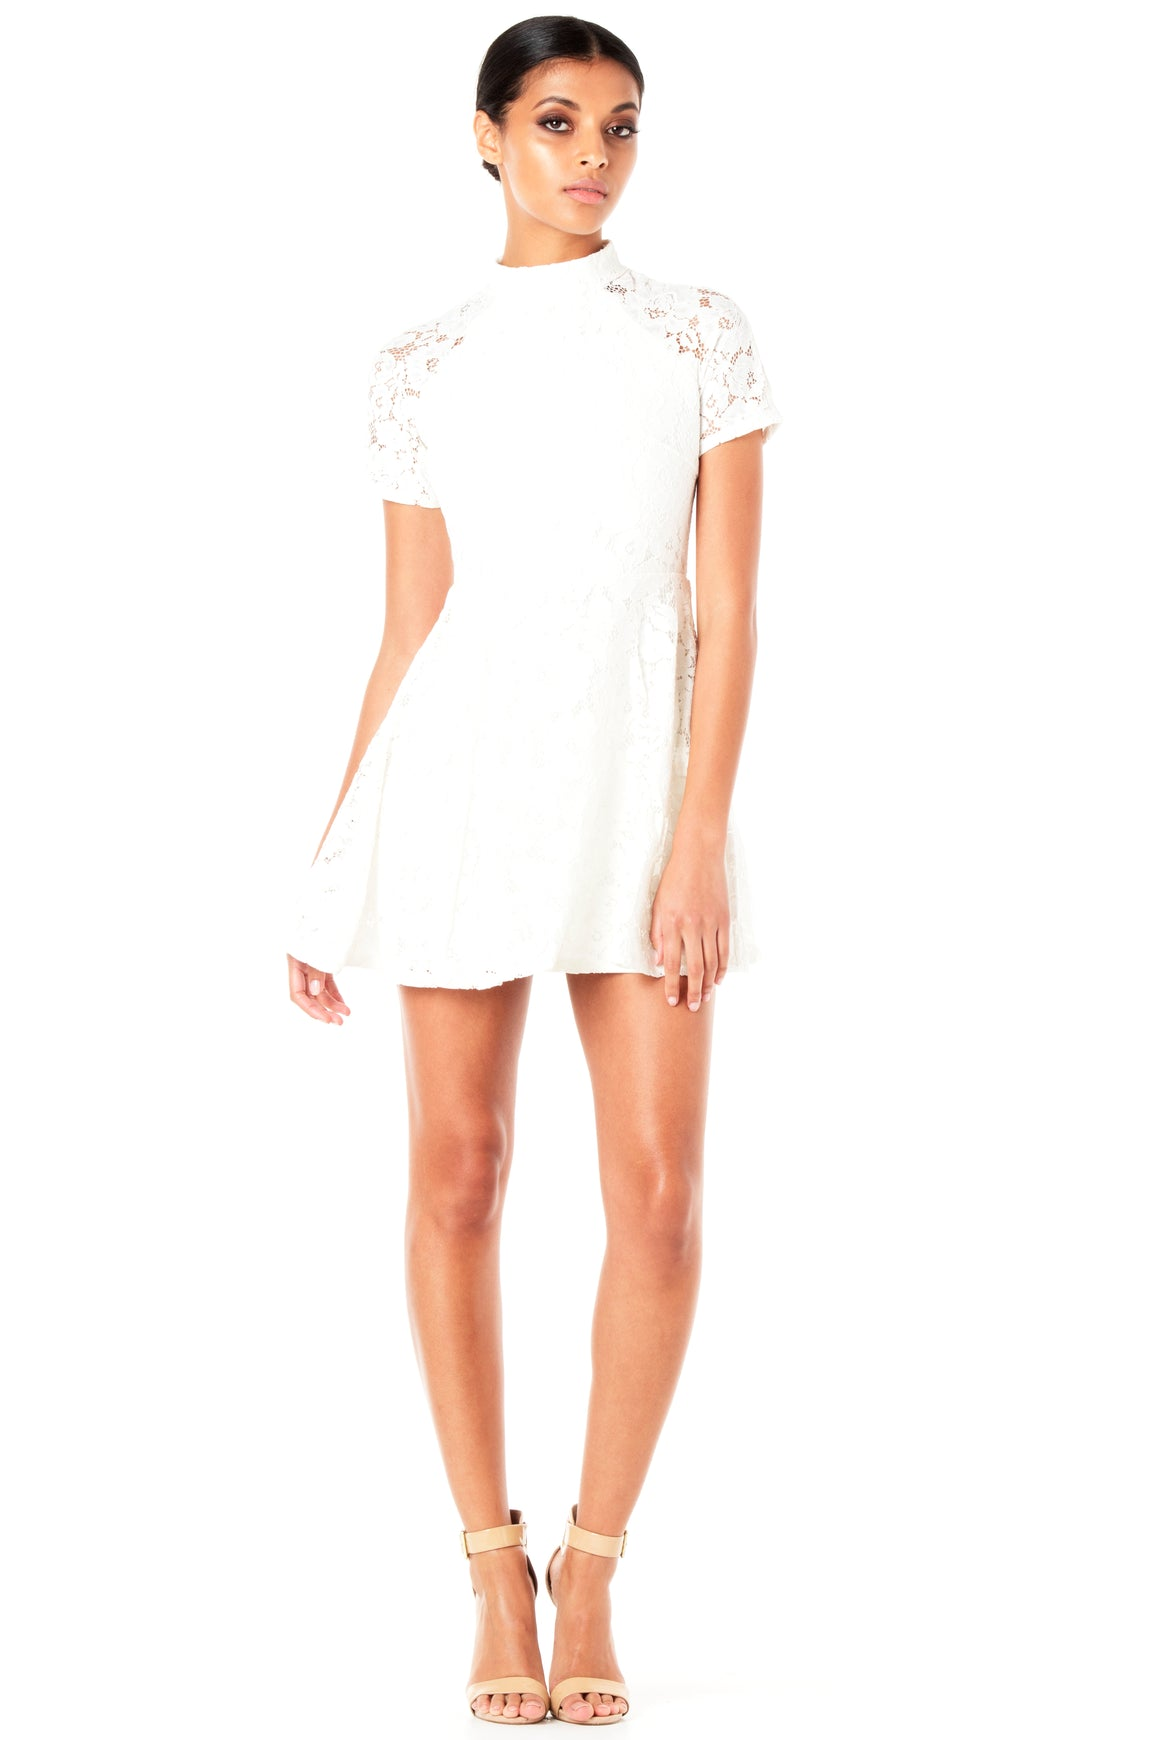 Willow Lace Dress - White [SAMPLE SALE]